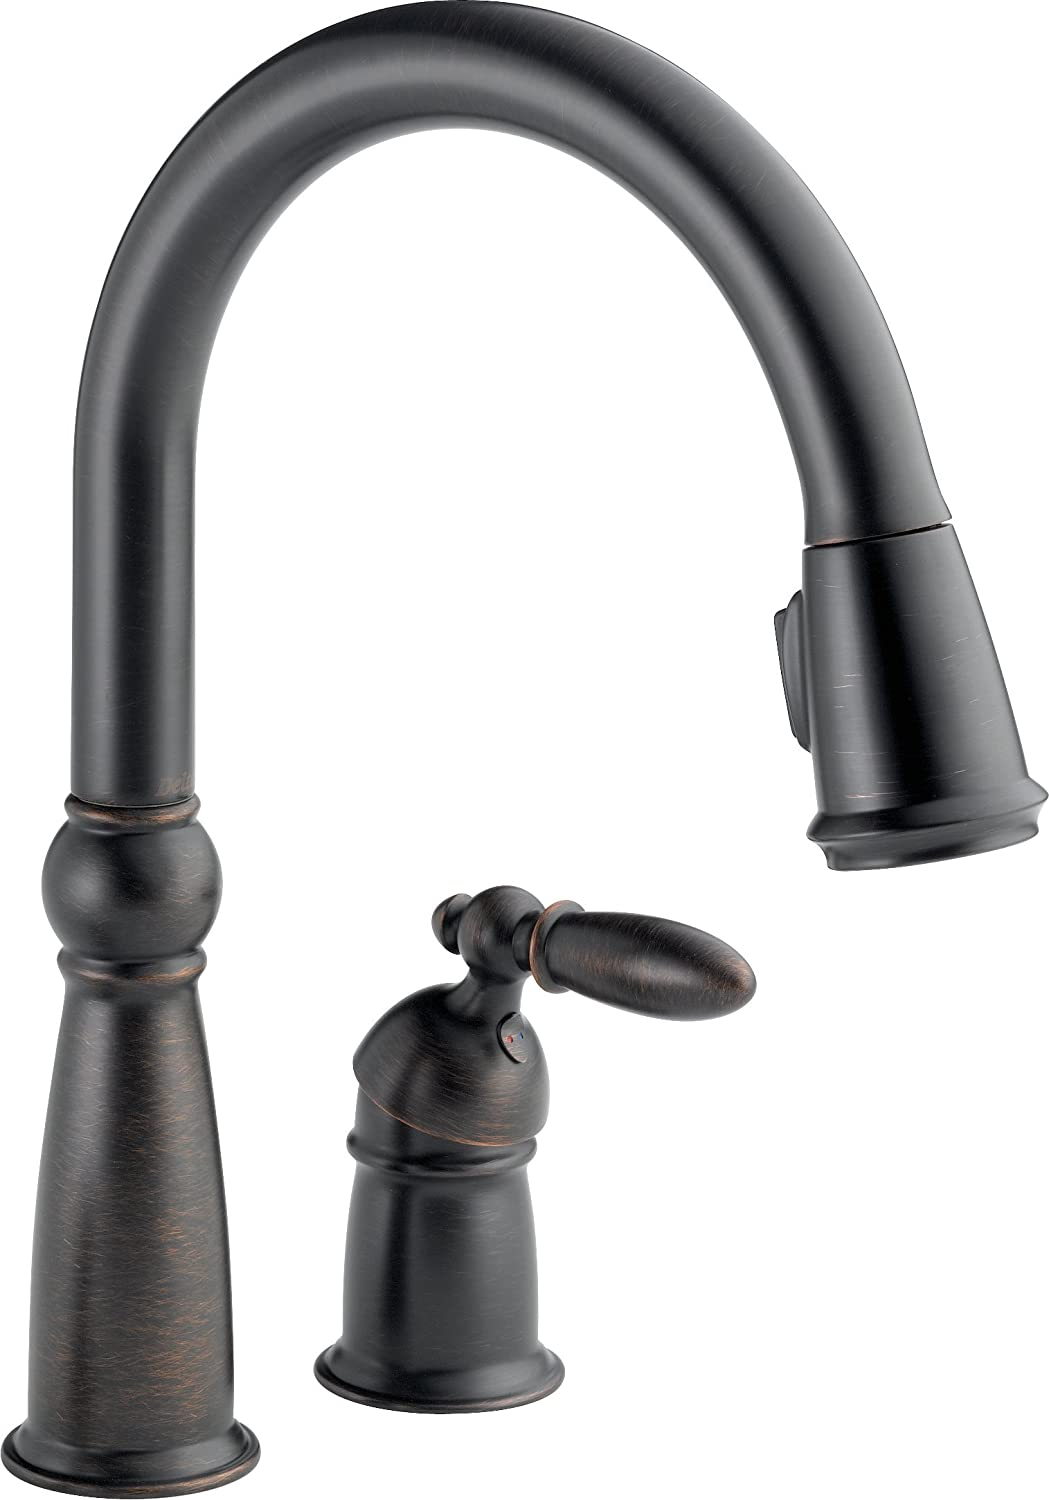 delta 955 rb dst victorian single handle pull down kitchen faucet delta 955 rb dst victorian single handle pull down kitchen faucet venetian bronze touch on kitchen sink faucets amazon com